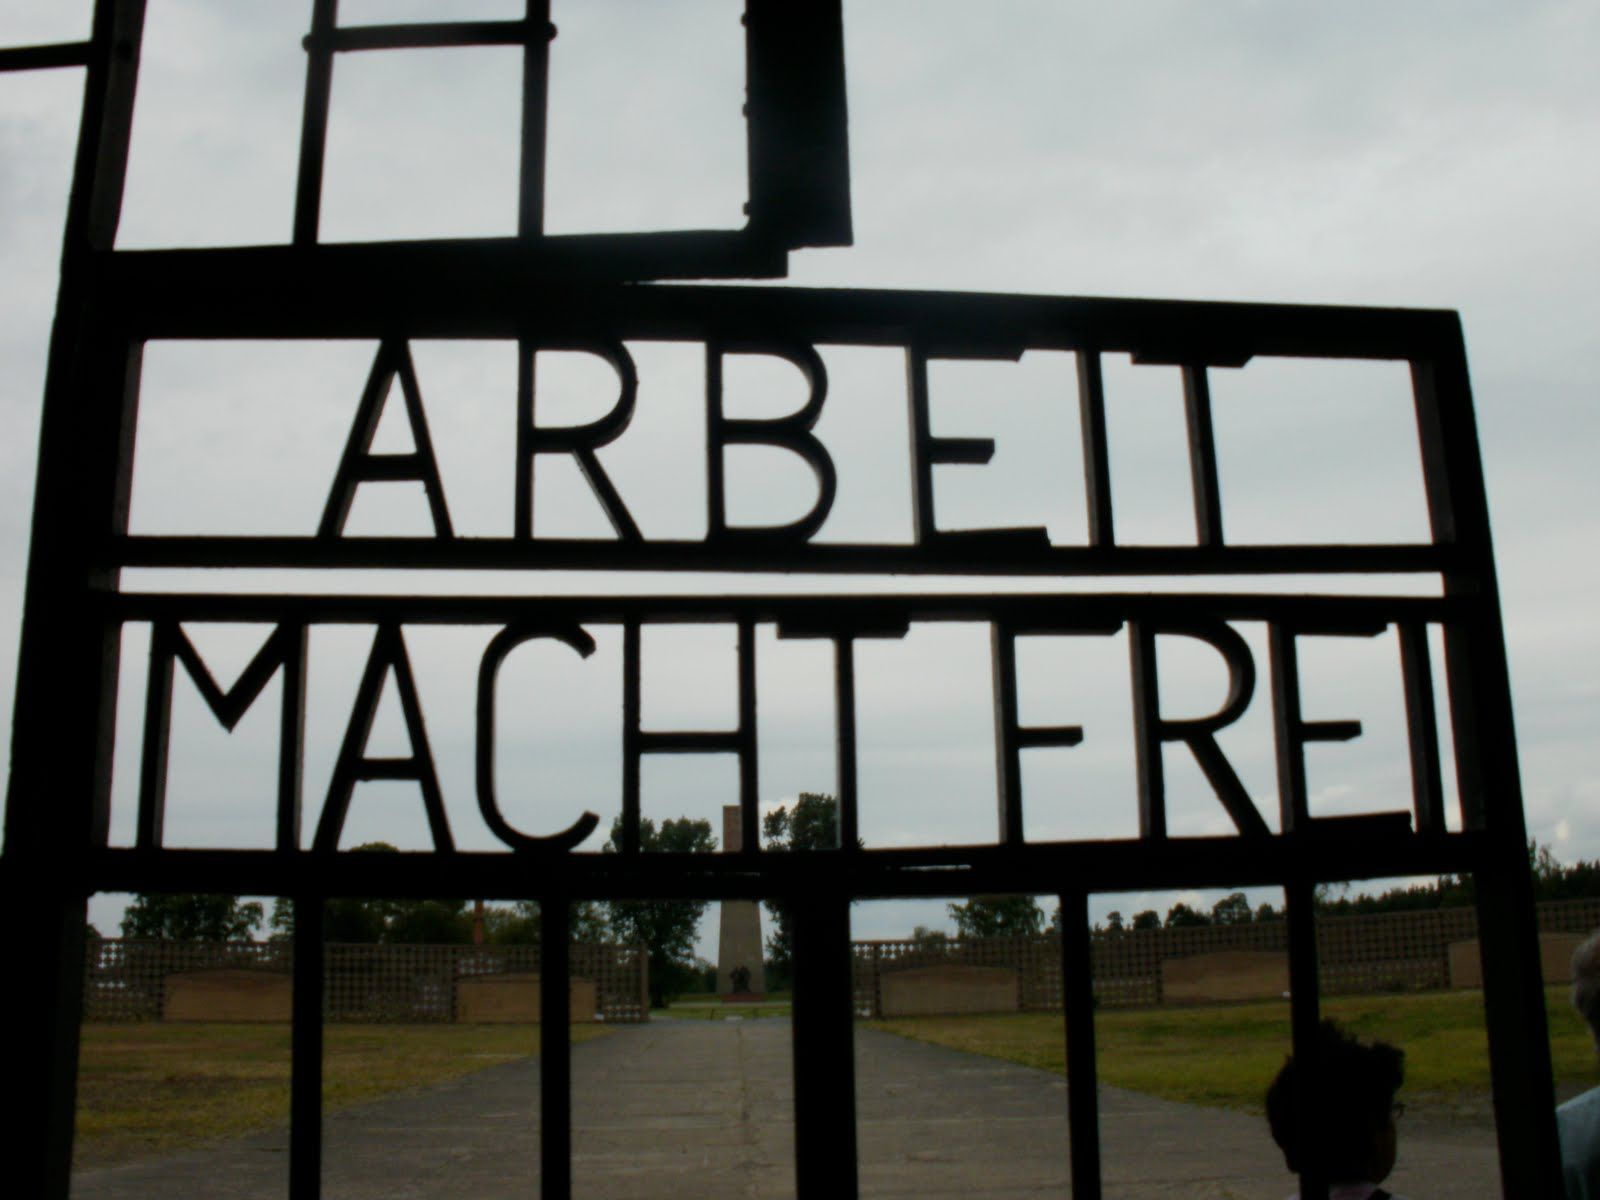 """Sign over entrance to Nazi Extermination Camp Auschwitz-Birkenau (Poland): """"Wok makes you free"""" - an attempt to convince the arriving Jews, despite operating crematoria, palls of smoke, & stench of burning humans, that they were at a Labor Camp"""